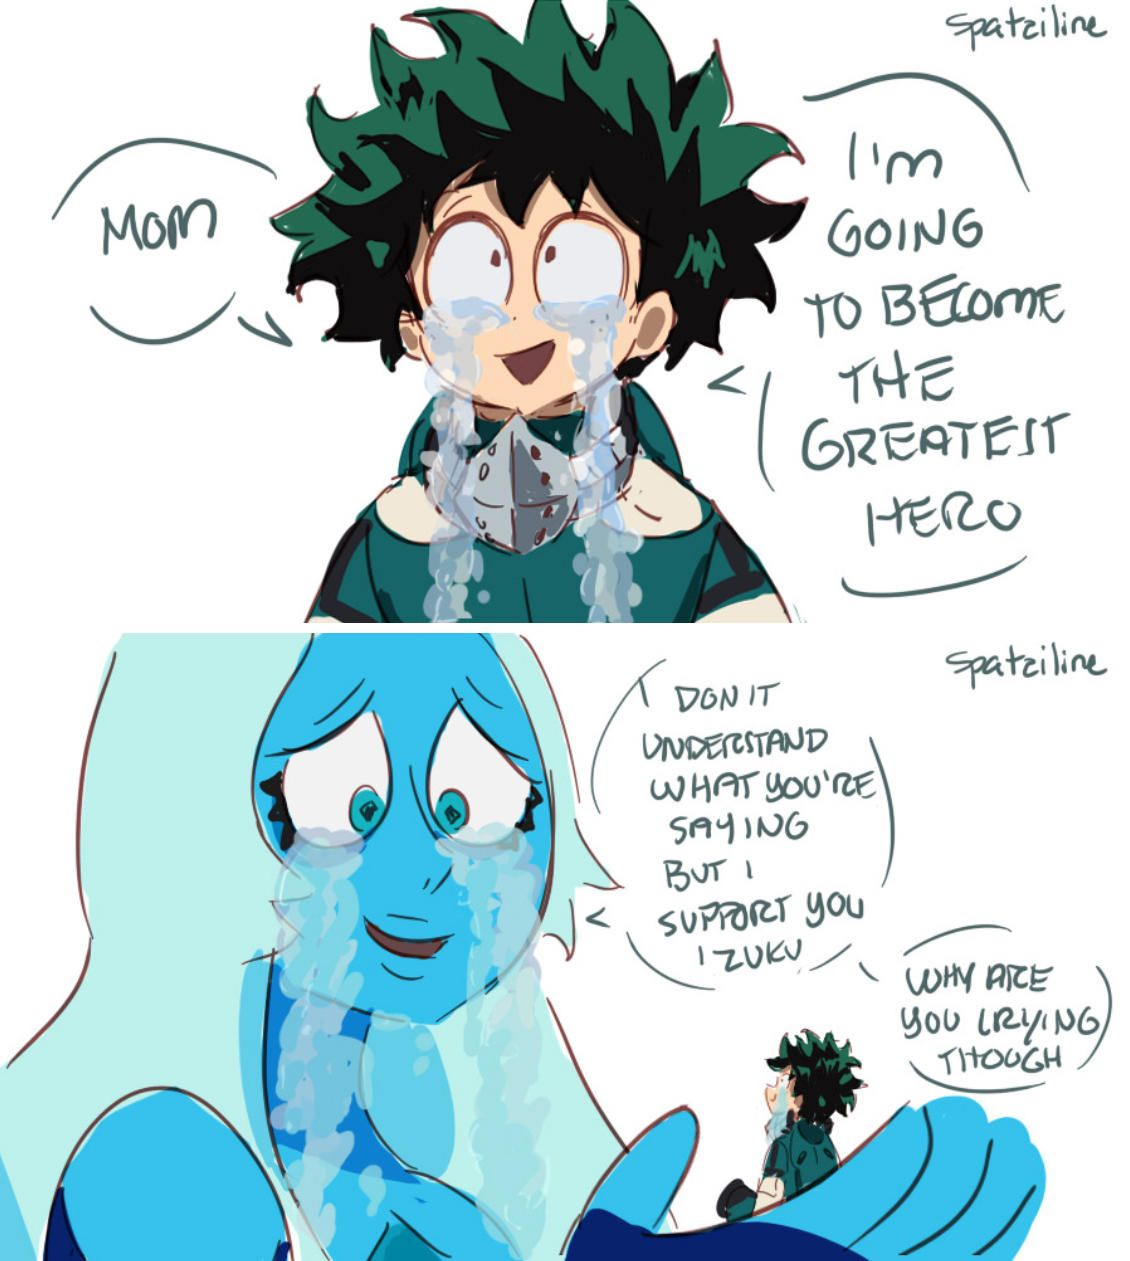 So is the crying a quirk or a gem power? Cosas de otaku